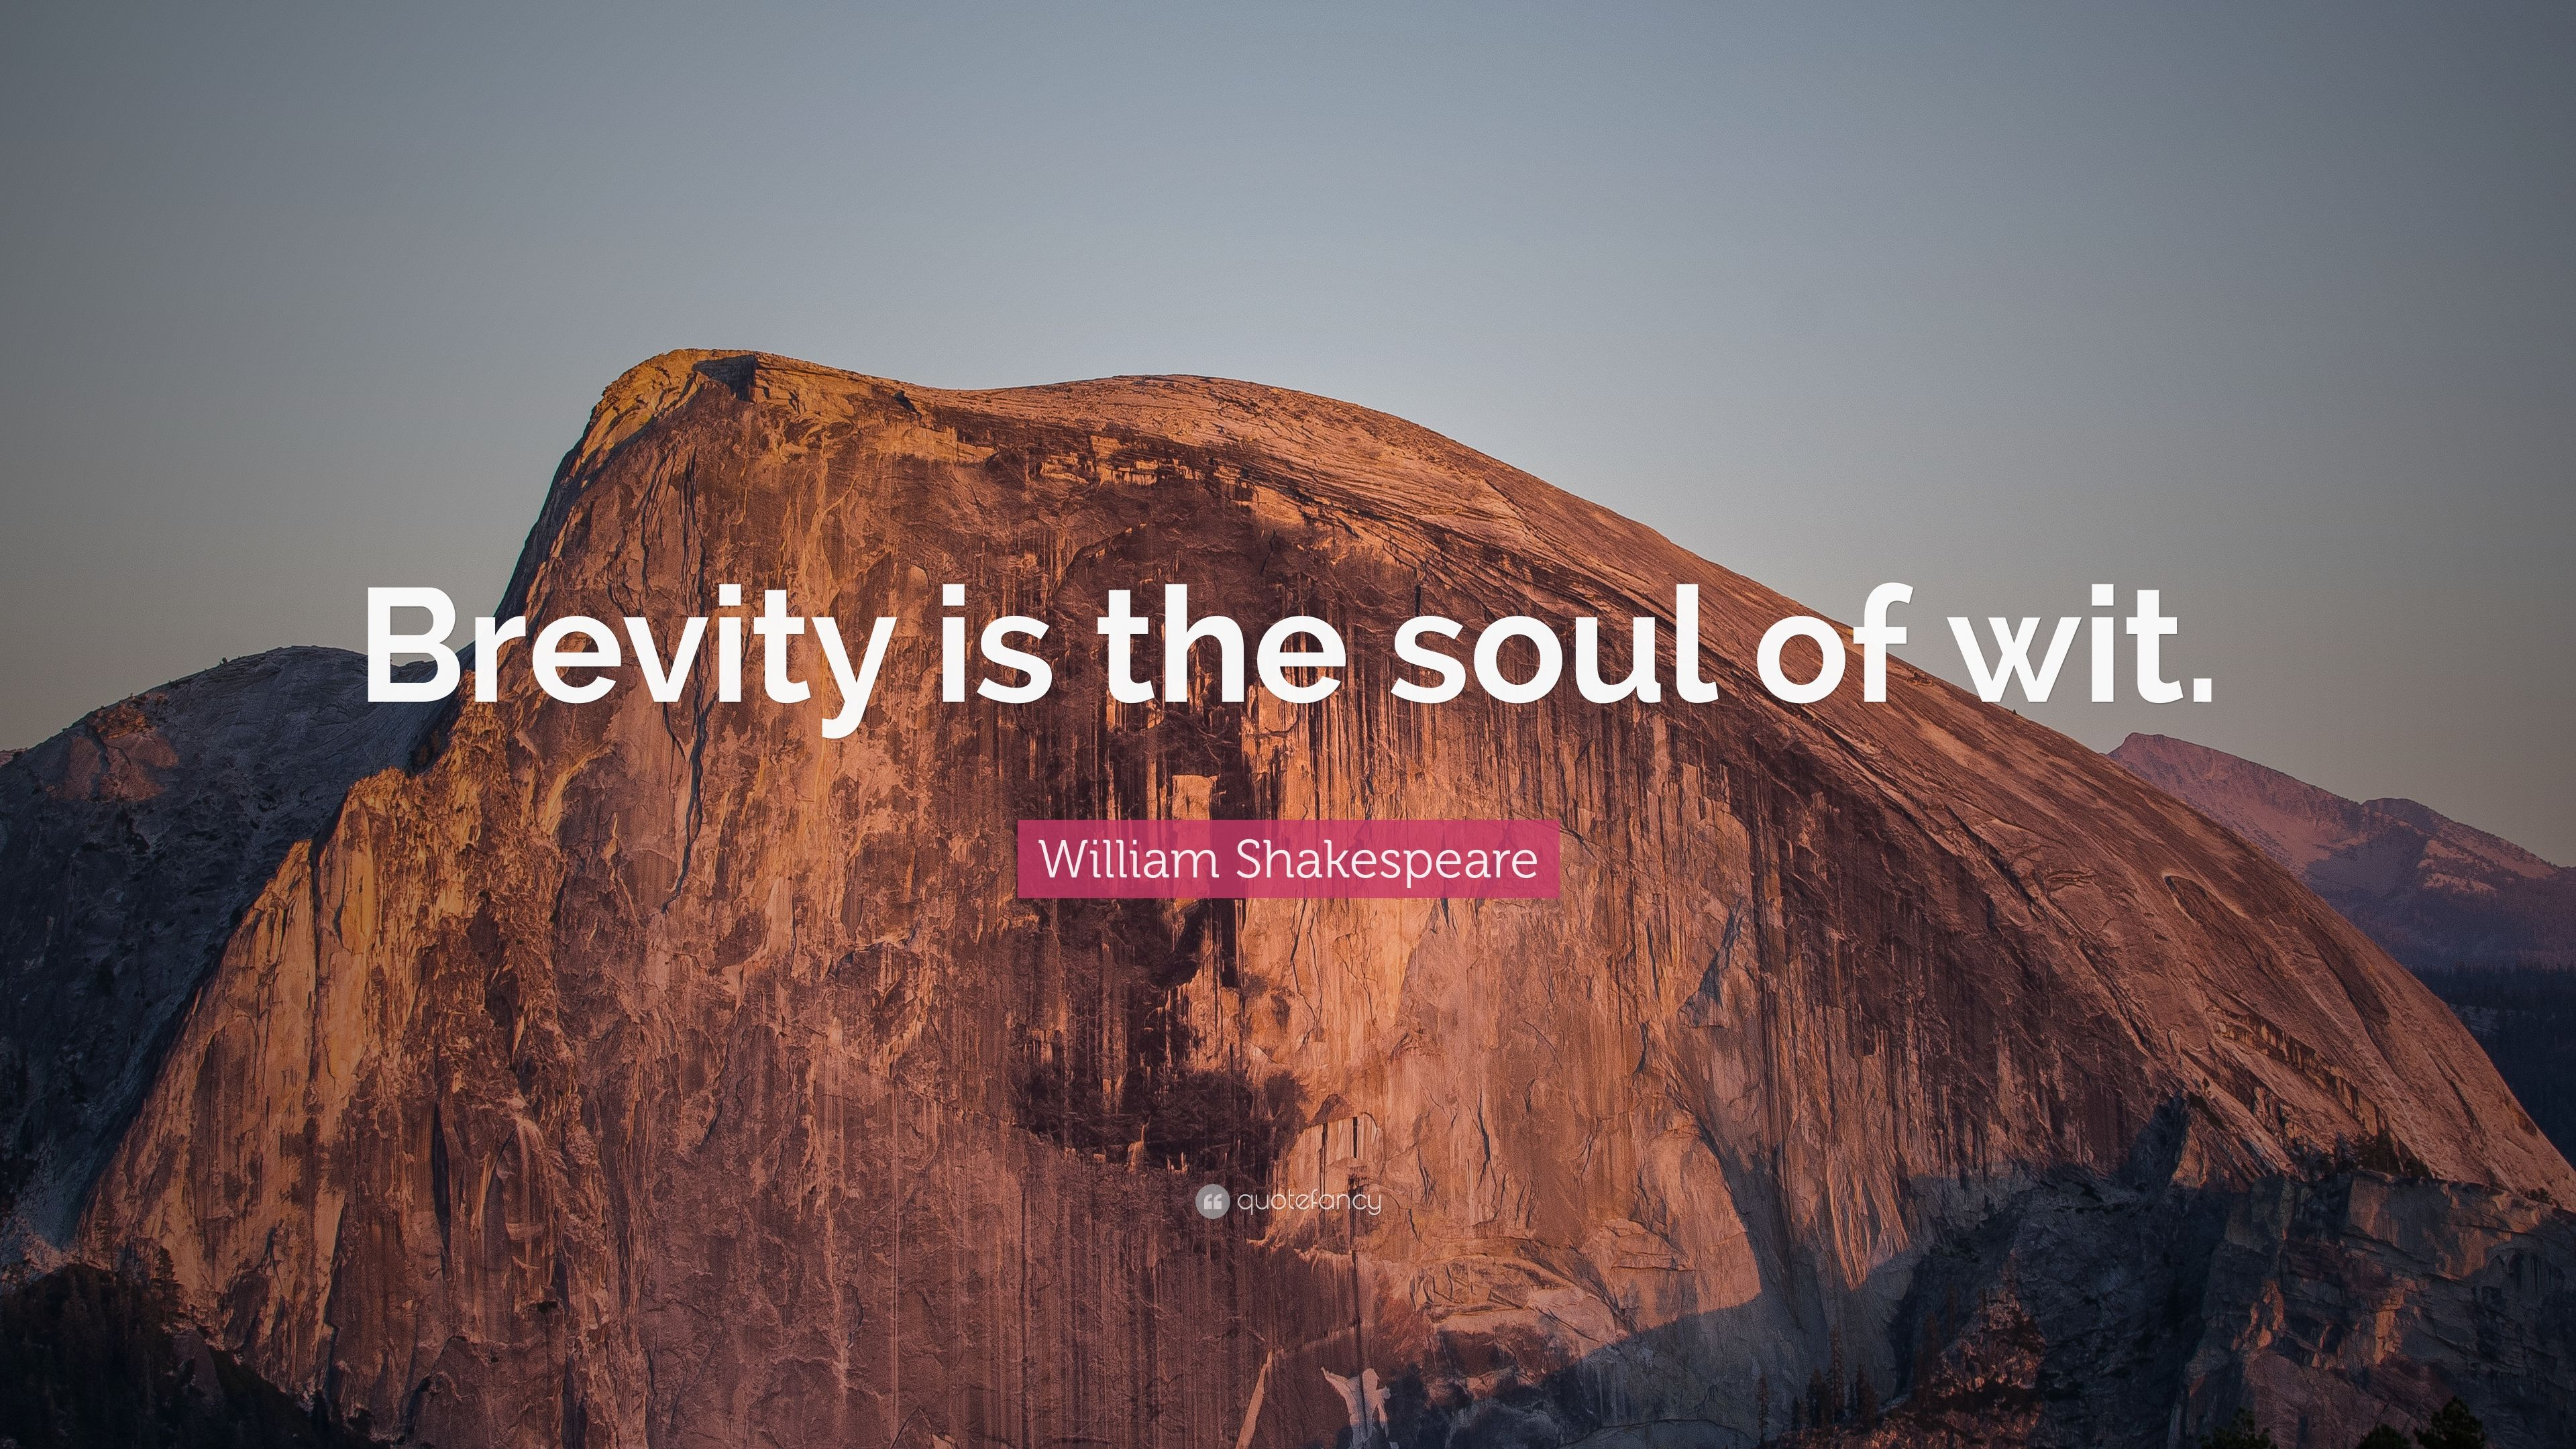 Brevity is the soul of wit essay